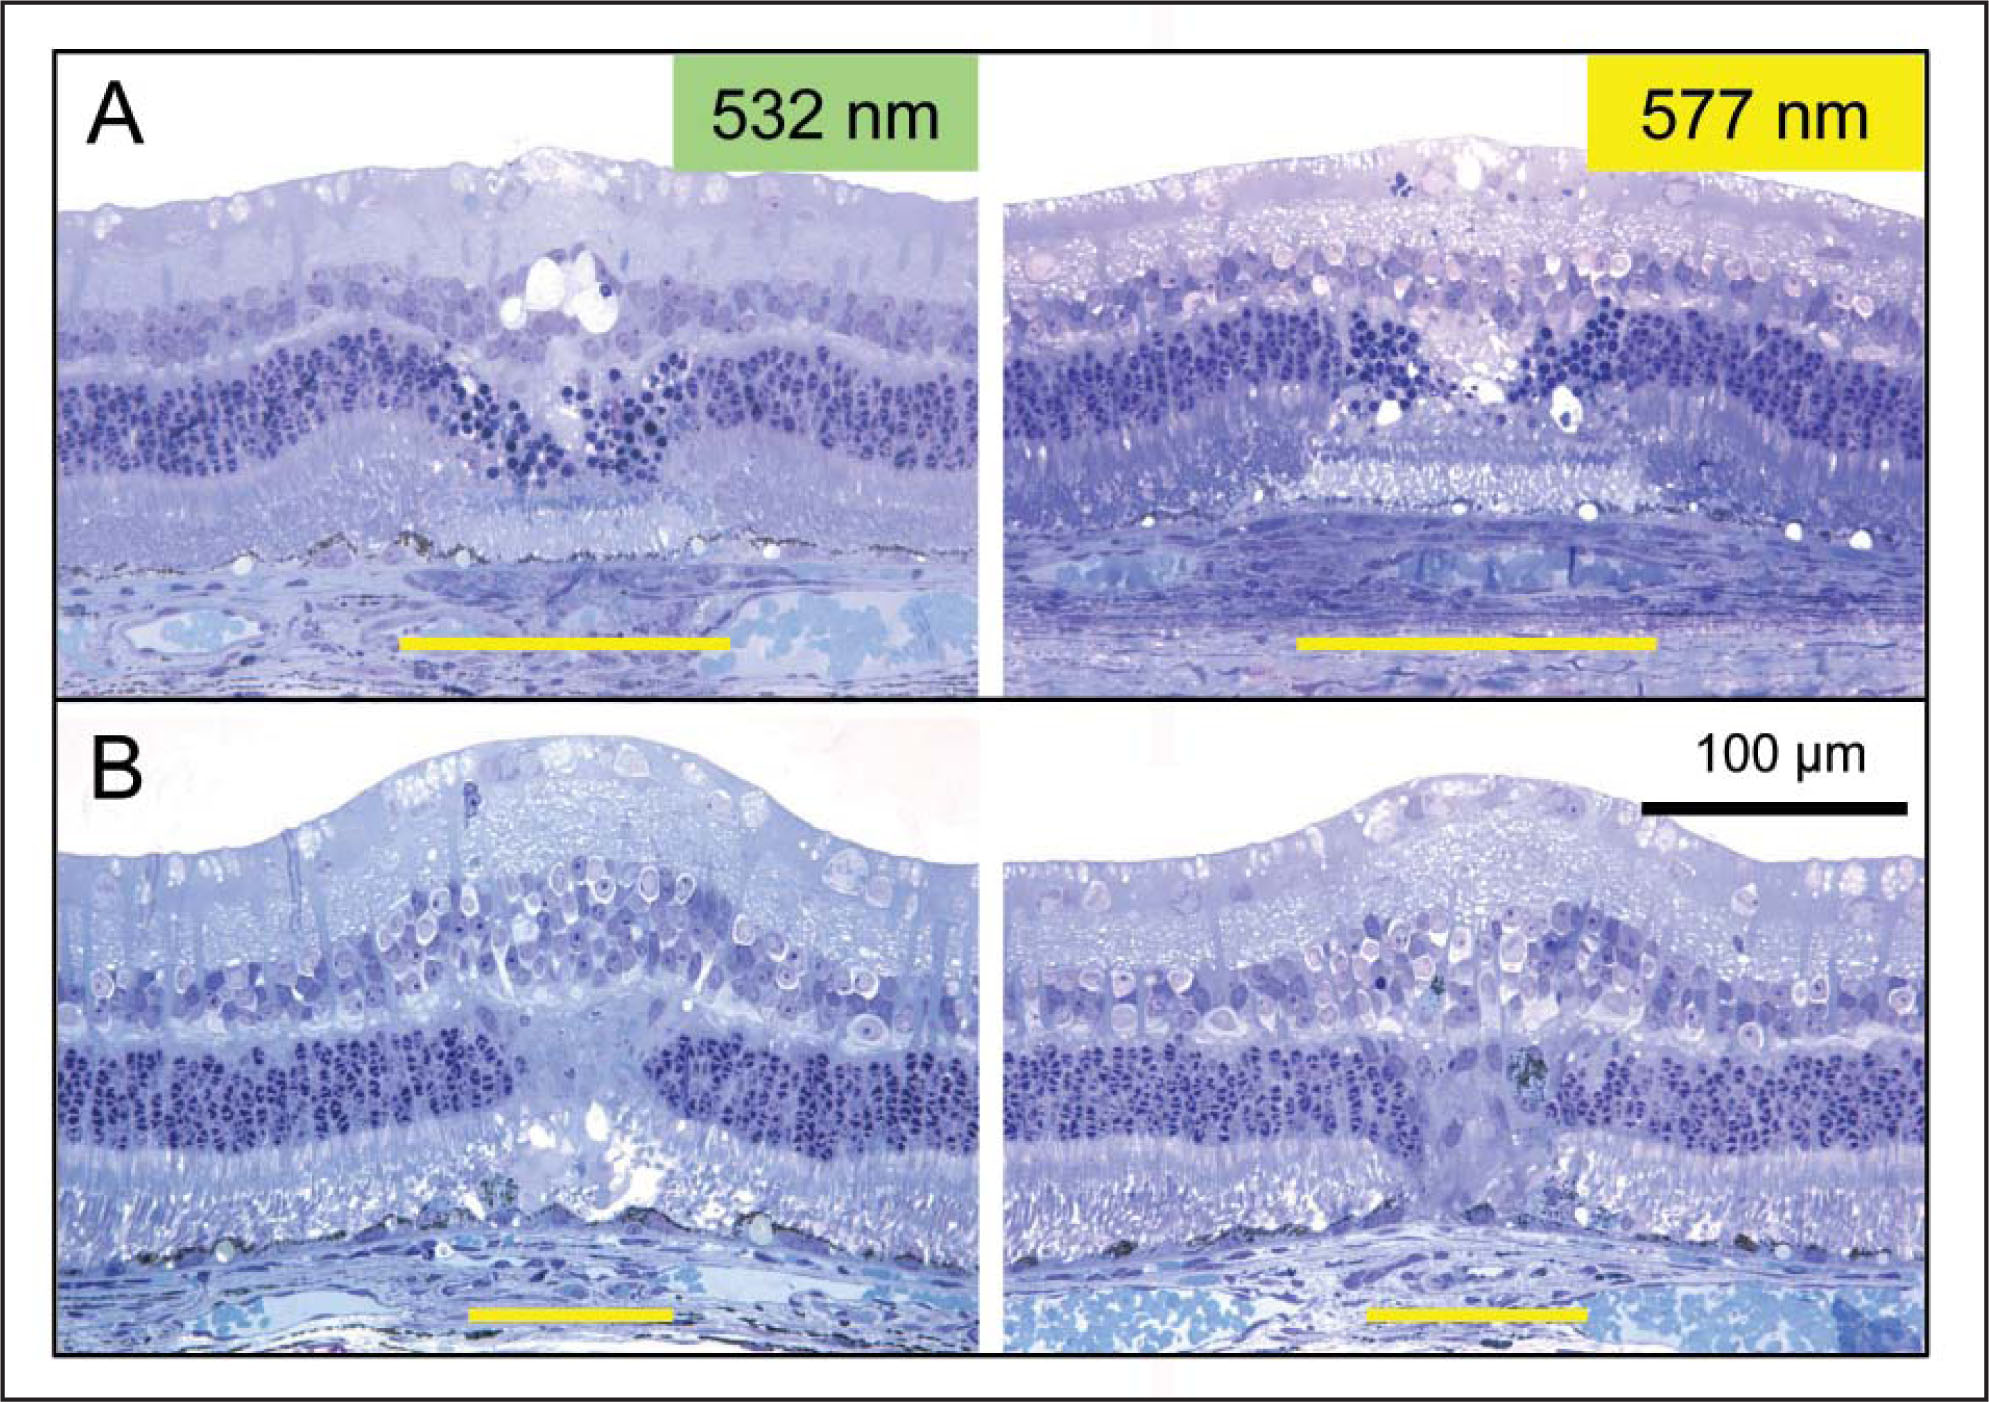 Representative histologic sections (toluidine blue staining, original magnification ×20) of 577- and 532-nm mild coagulation lesions (20-ms pulse duration) at (A) 1 day and (B) 7 day post-laser time-points. Lesion width at the retinal pigment epithelium does not appear to vary between 577- and 532-nm laser lesions, and similar shrinkage of the lesion (34% reduction in lesion width) occurred over 1 week for both types of lesions. No difference in inner retinal or choroidal damage is observed. Yellow bar indicates the width of the lesion at the retinal pigment epithelium–photoreceptor junction.